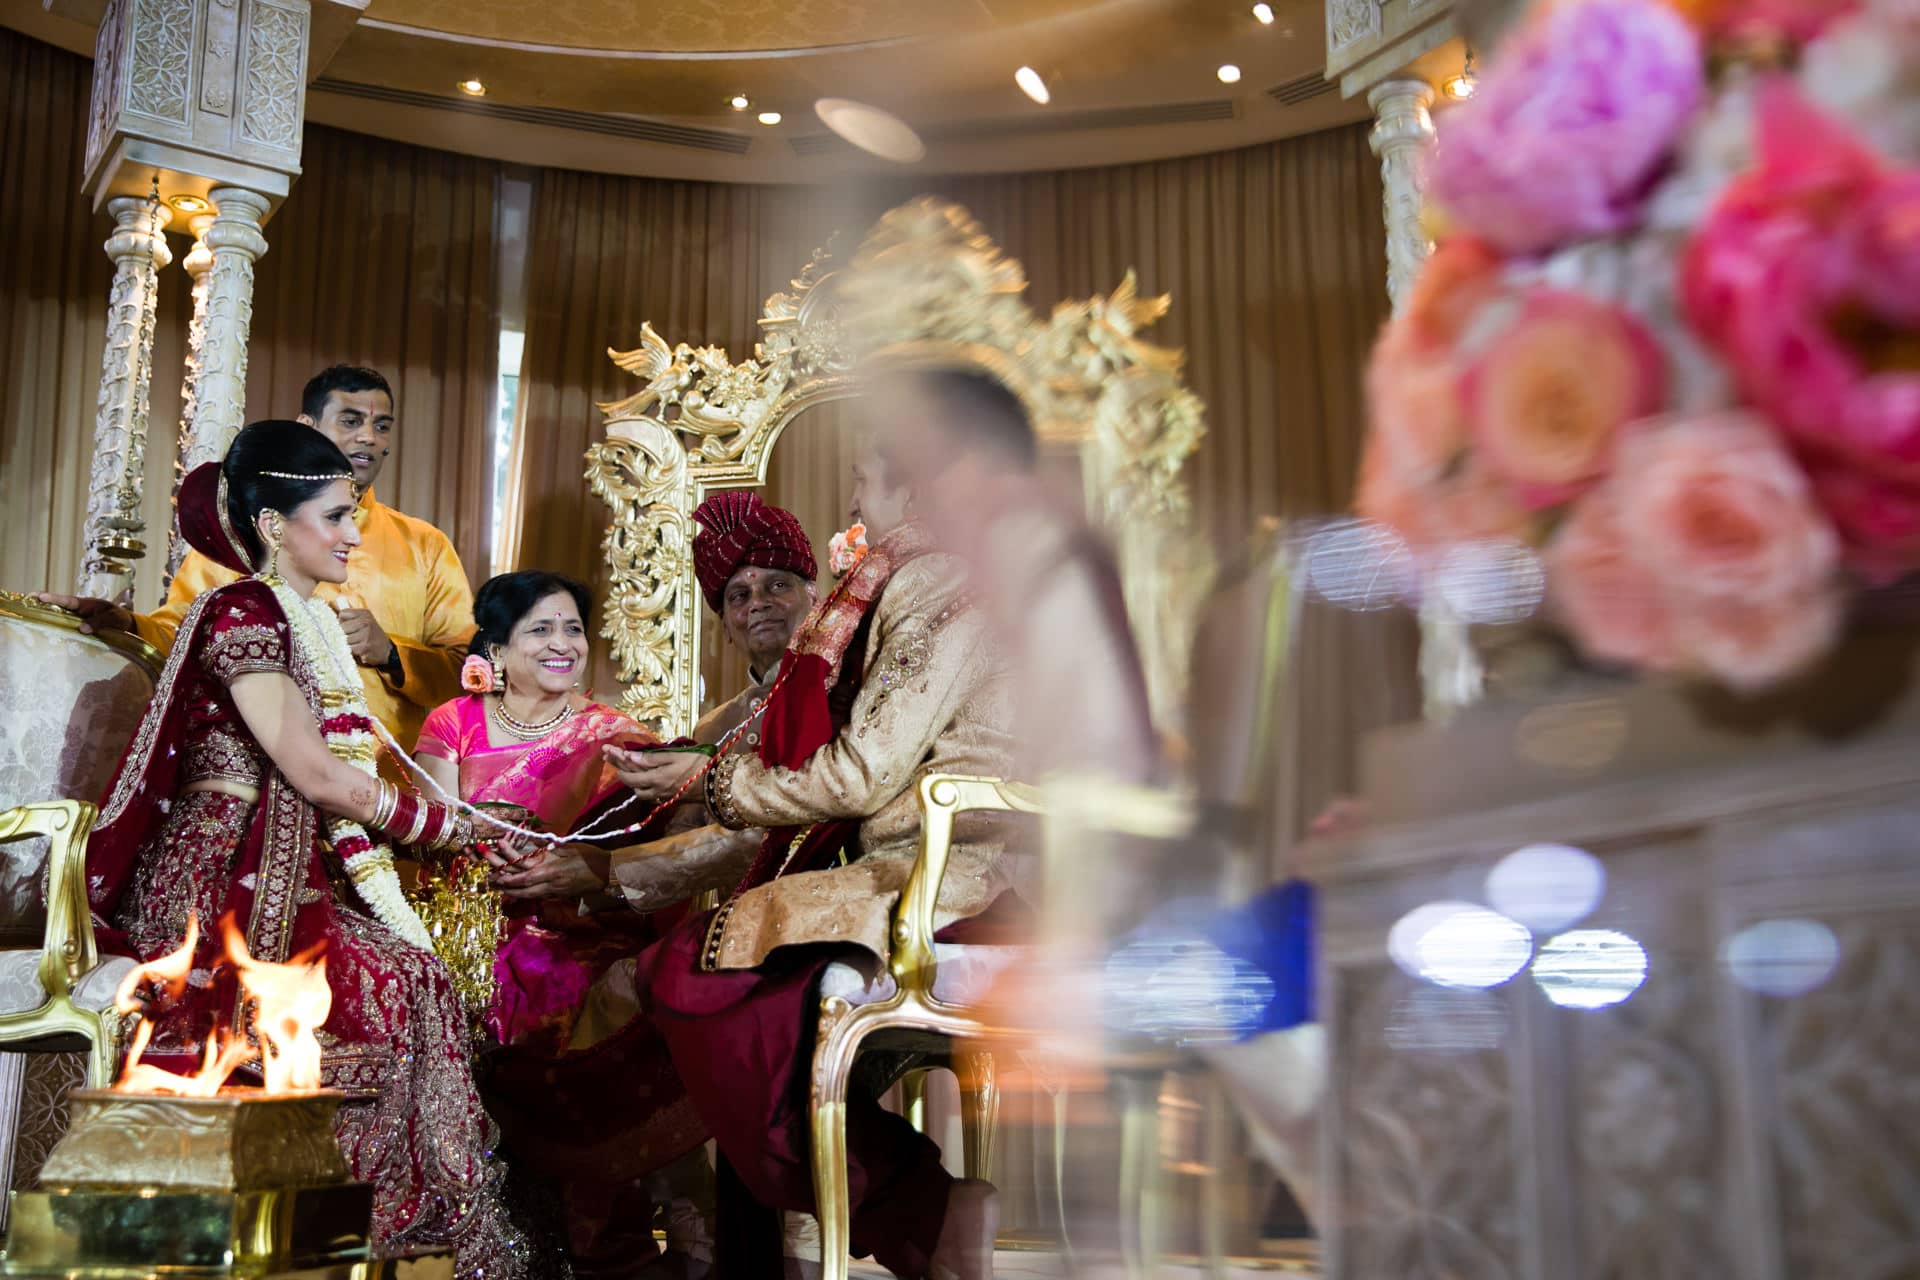 Hindu Wedding ceremony taking place